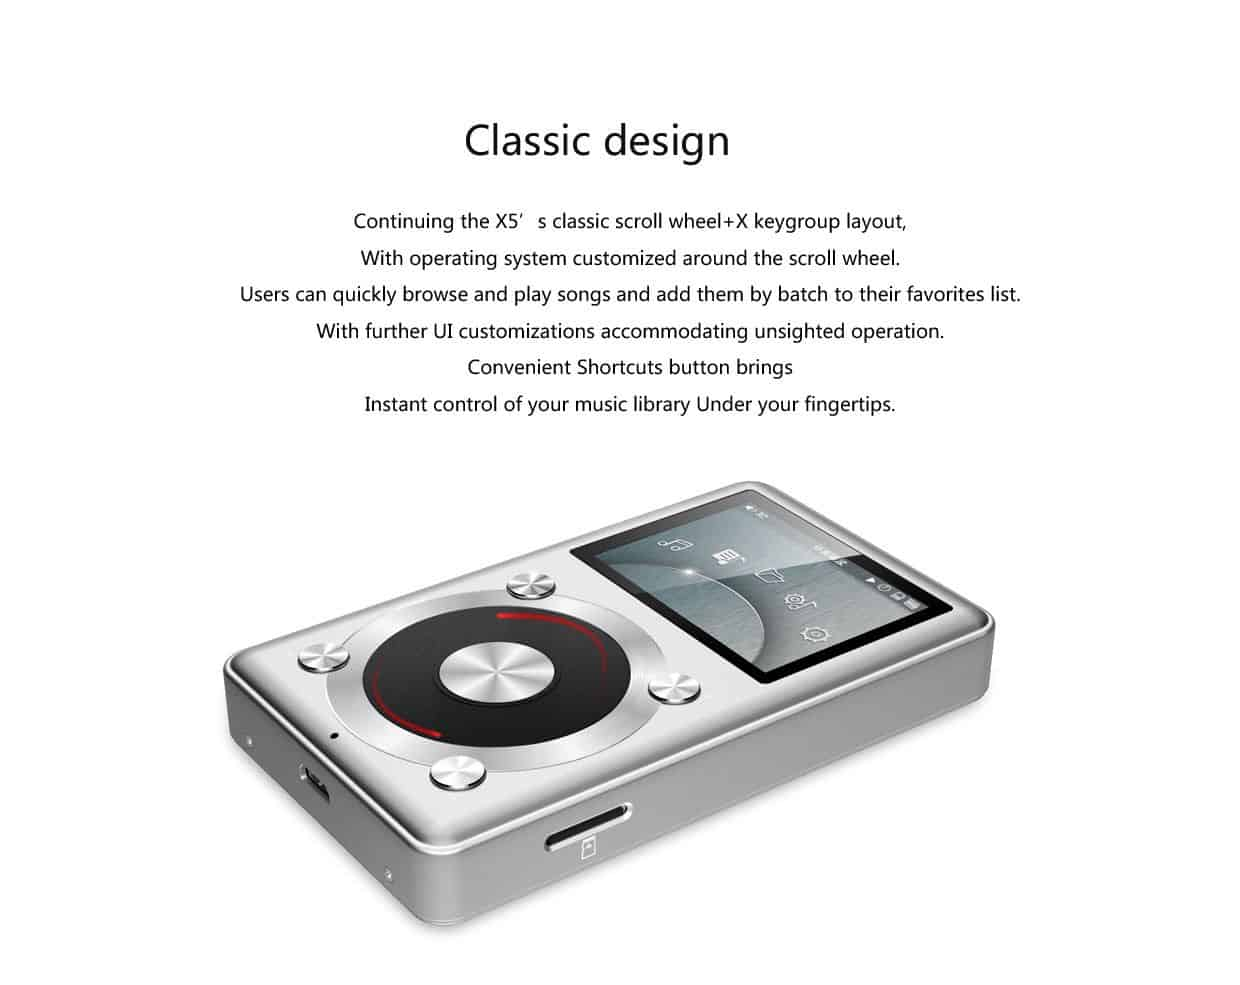 fiio x3 2nd gen firmware 1.4